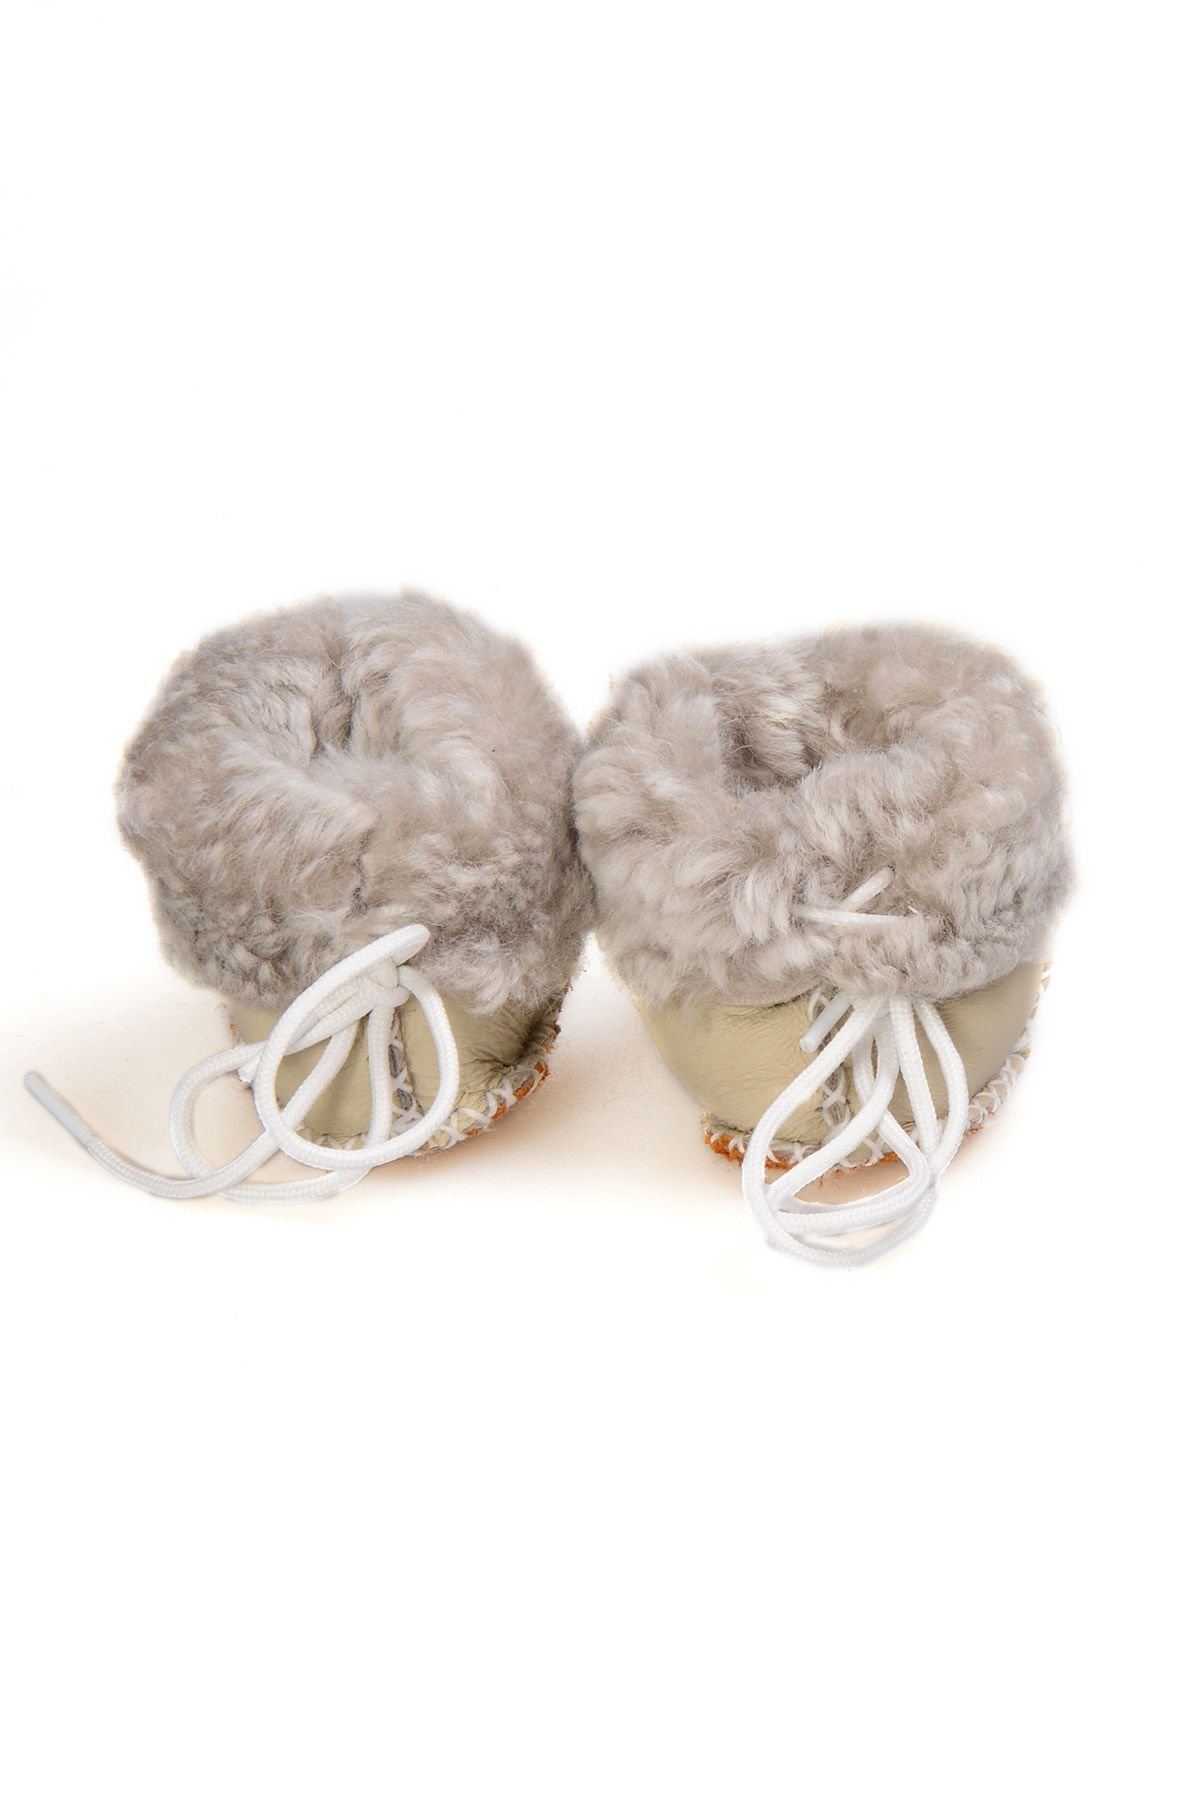 Pegia Babies Laced Shearling Booties 141105 Light Green